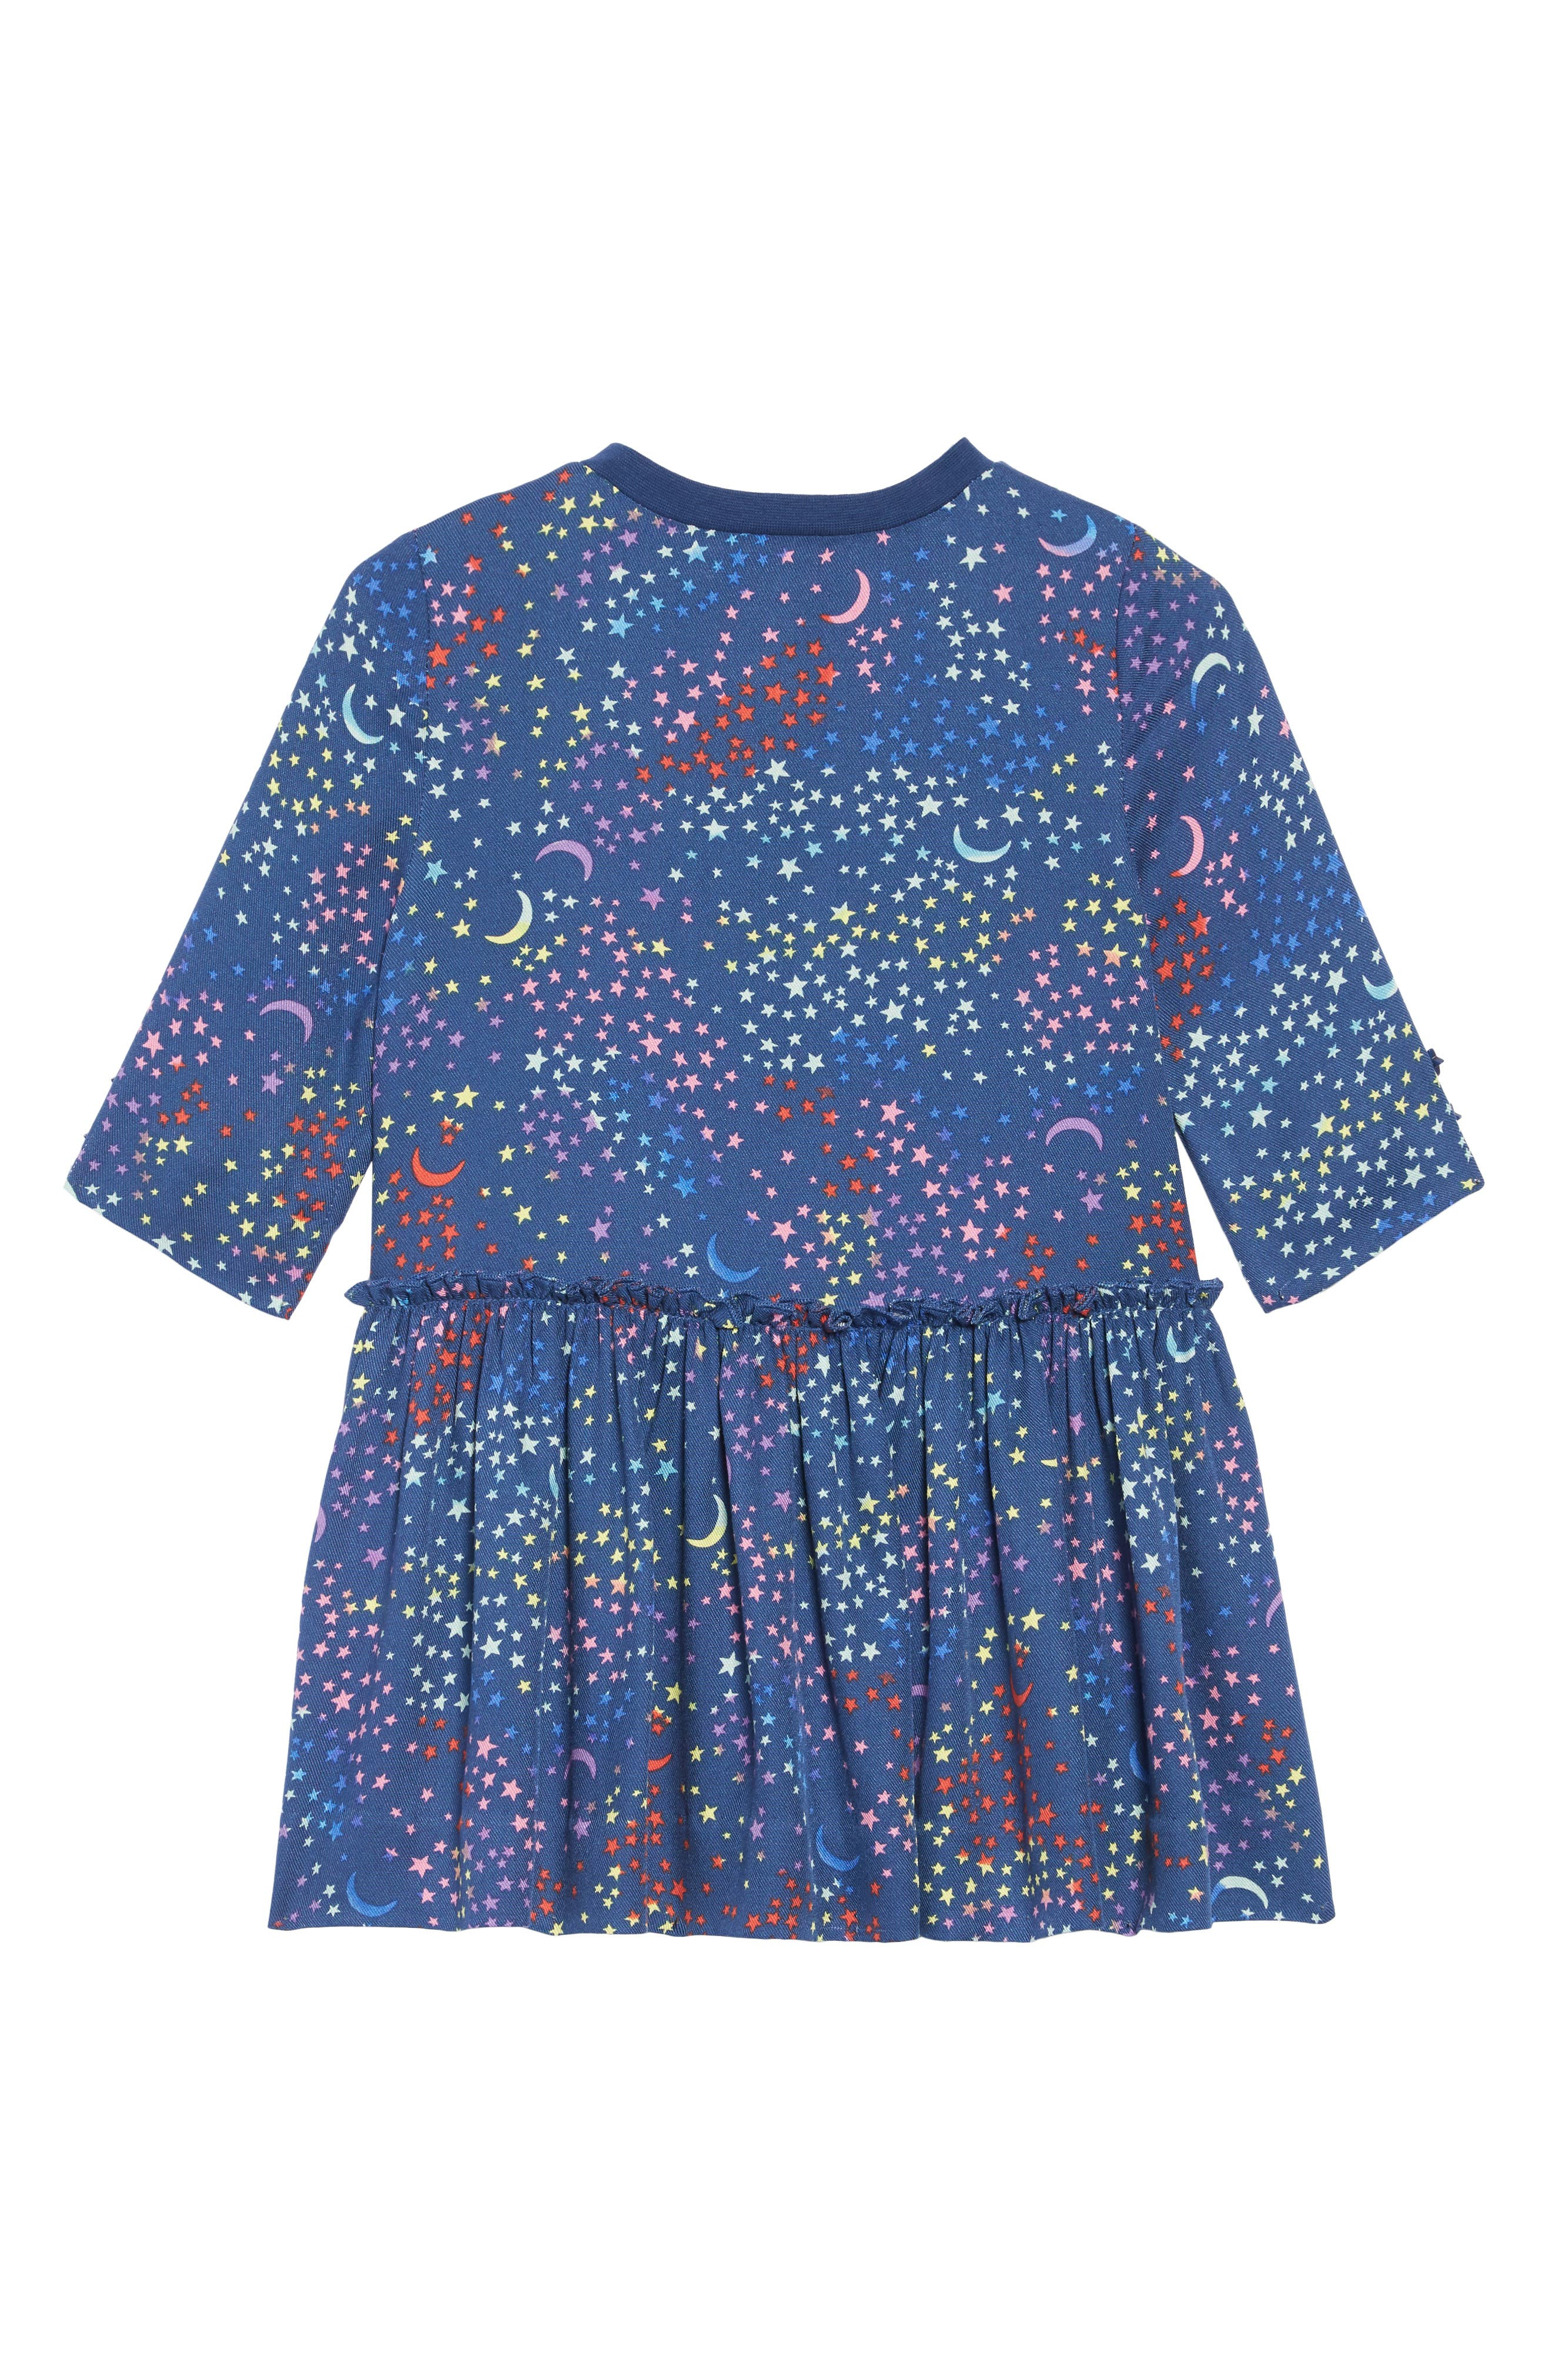 Stella McCartney Kiwi Star Print Dress,                             Alternate thumbnail 2, color,                             BLUE